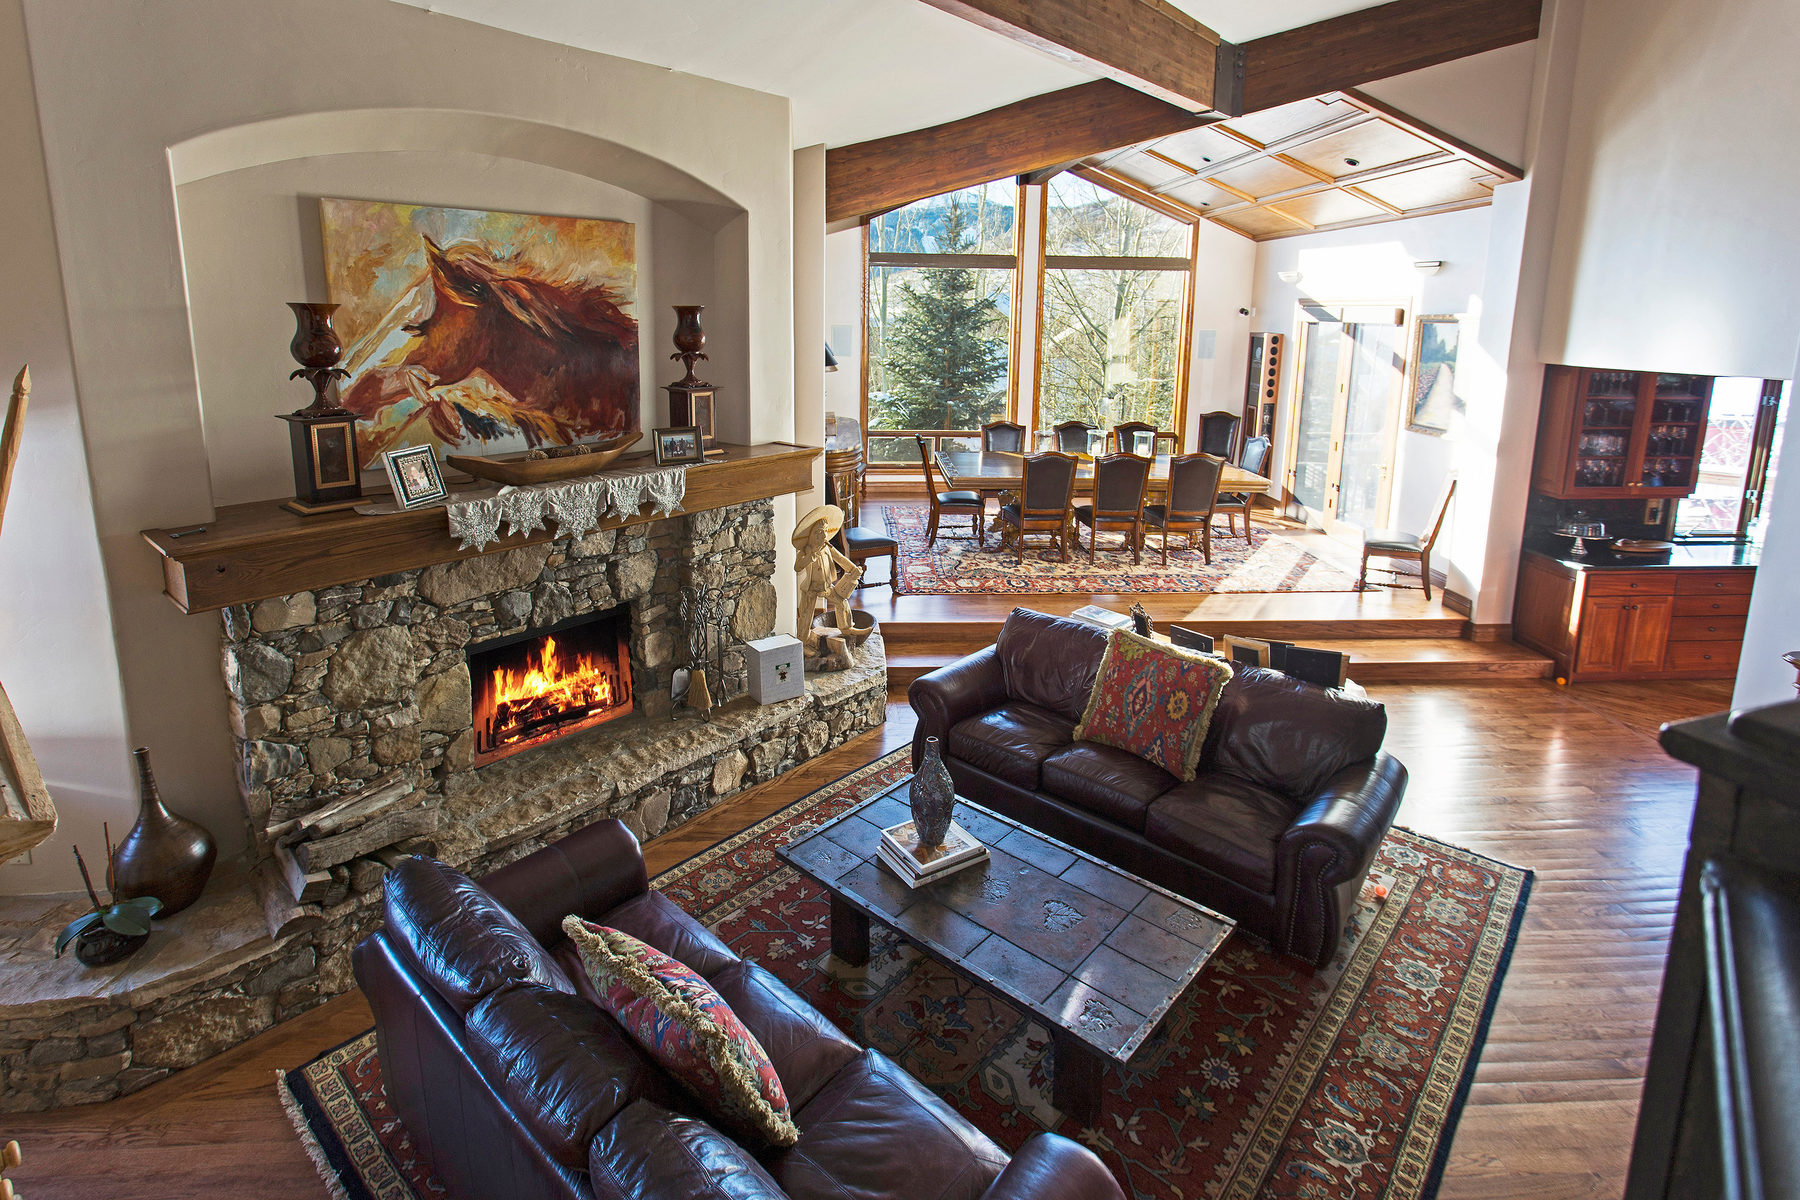 Moradia para Venda às Stated Refined Elegance in Deer Valley 3135 Thistle St Park City, Utah 84060 Estados Unidos